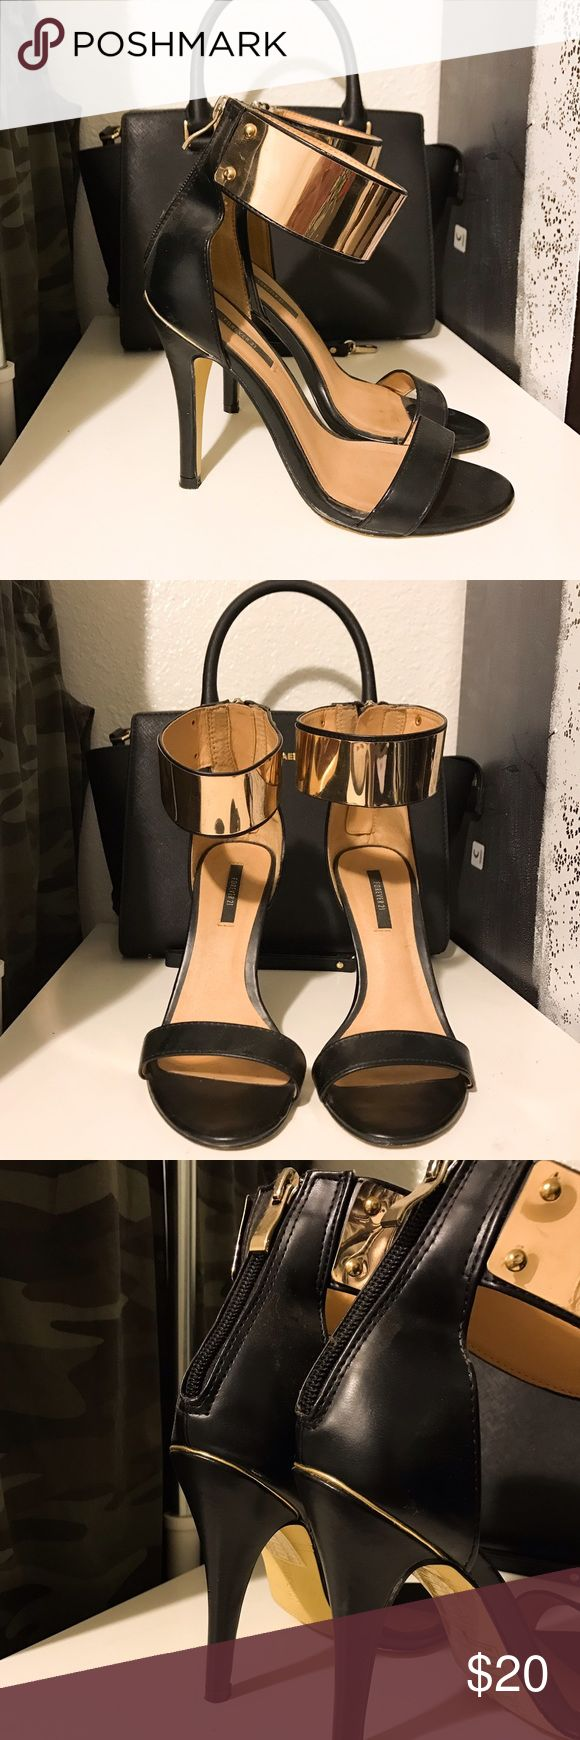 ♡ FOREVER 21 GOLD STRAP HEELS ♡ ♡ Size too big for me. I'm a six and a half but only used once. Still in good condition,new. ♡ Forever 21 Shoes Heels